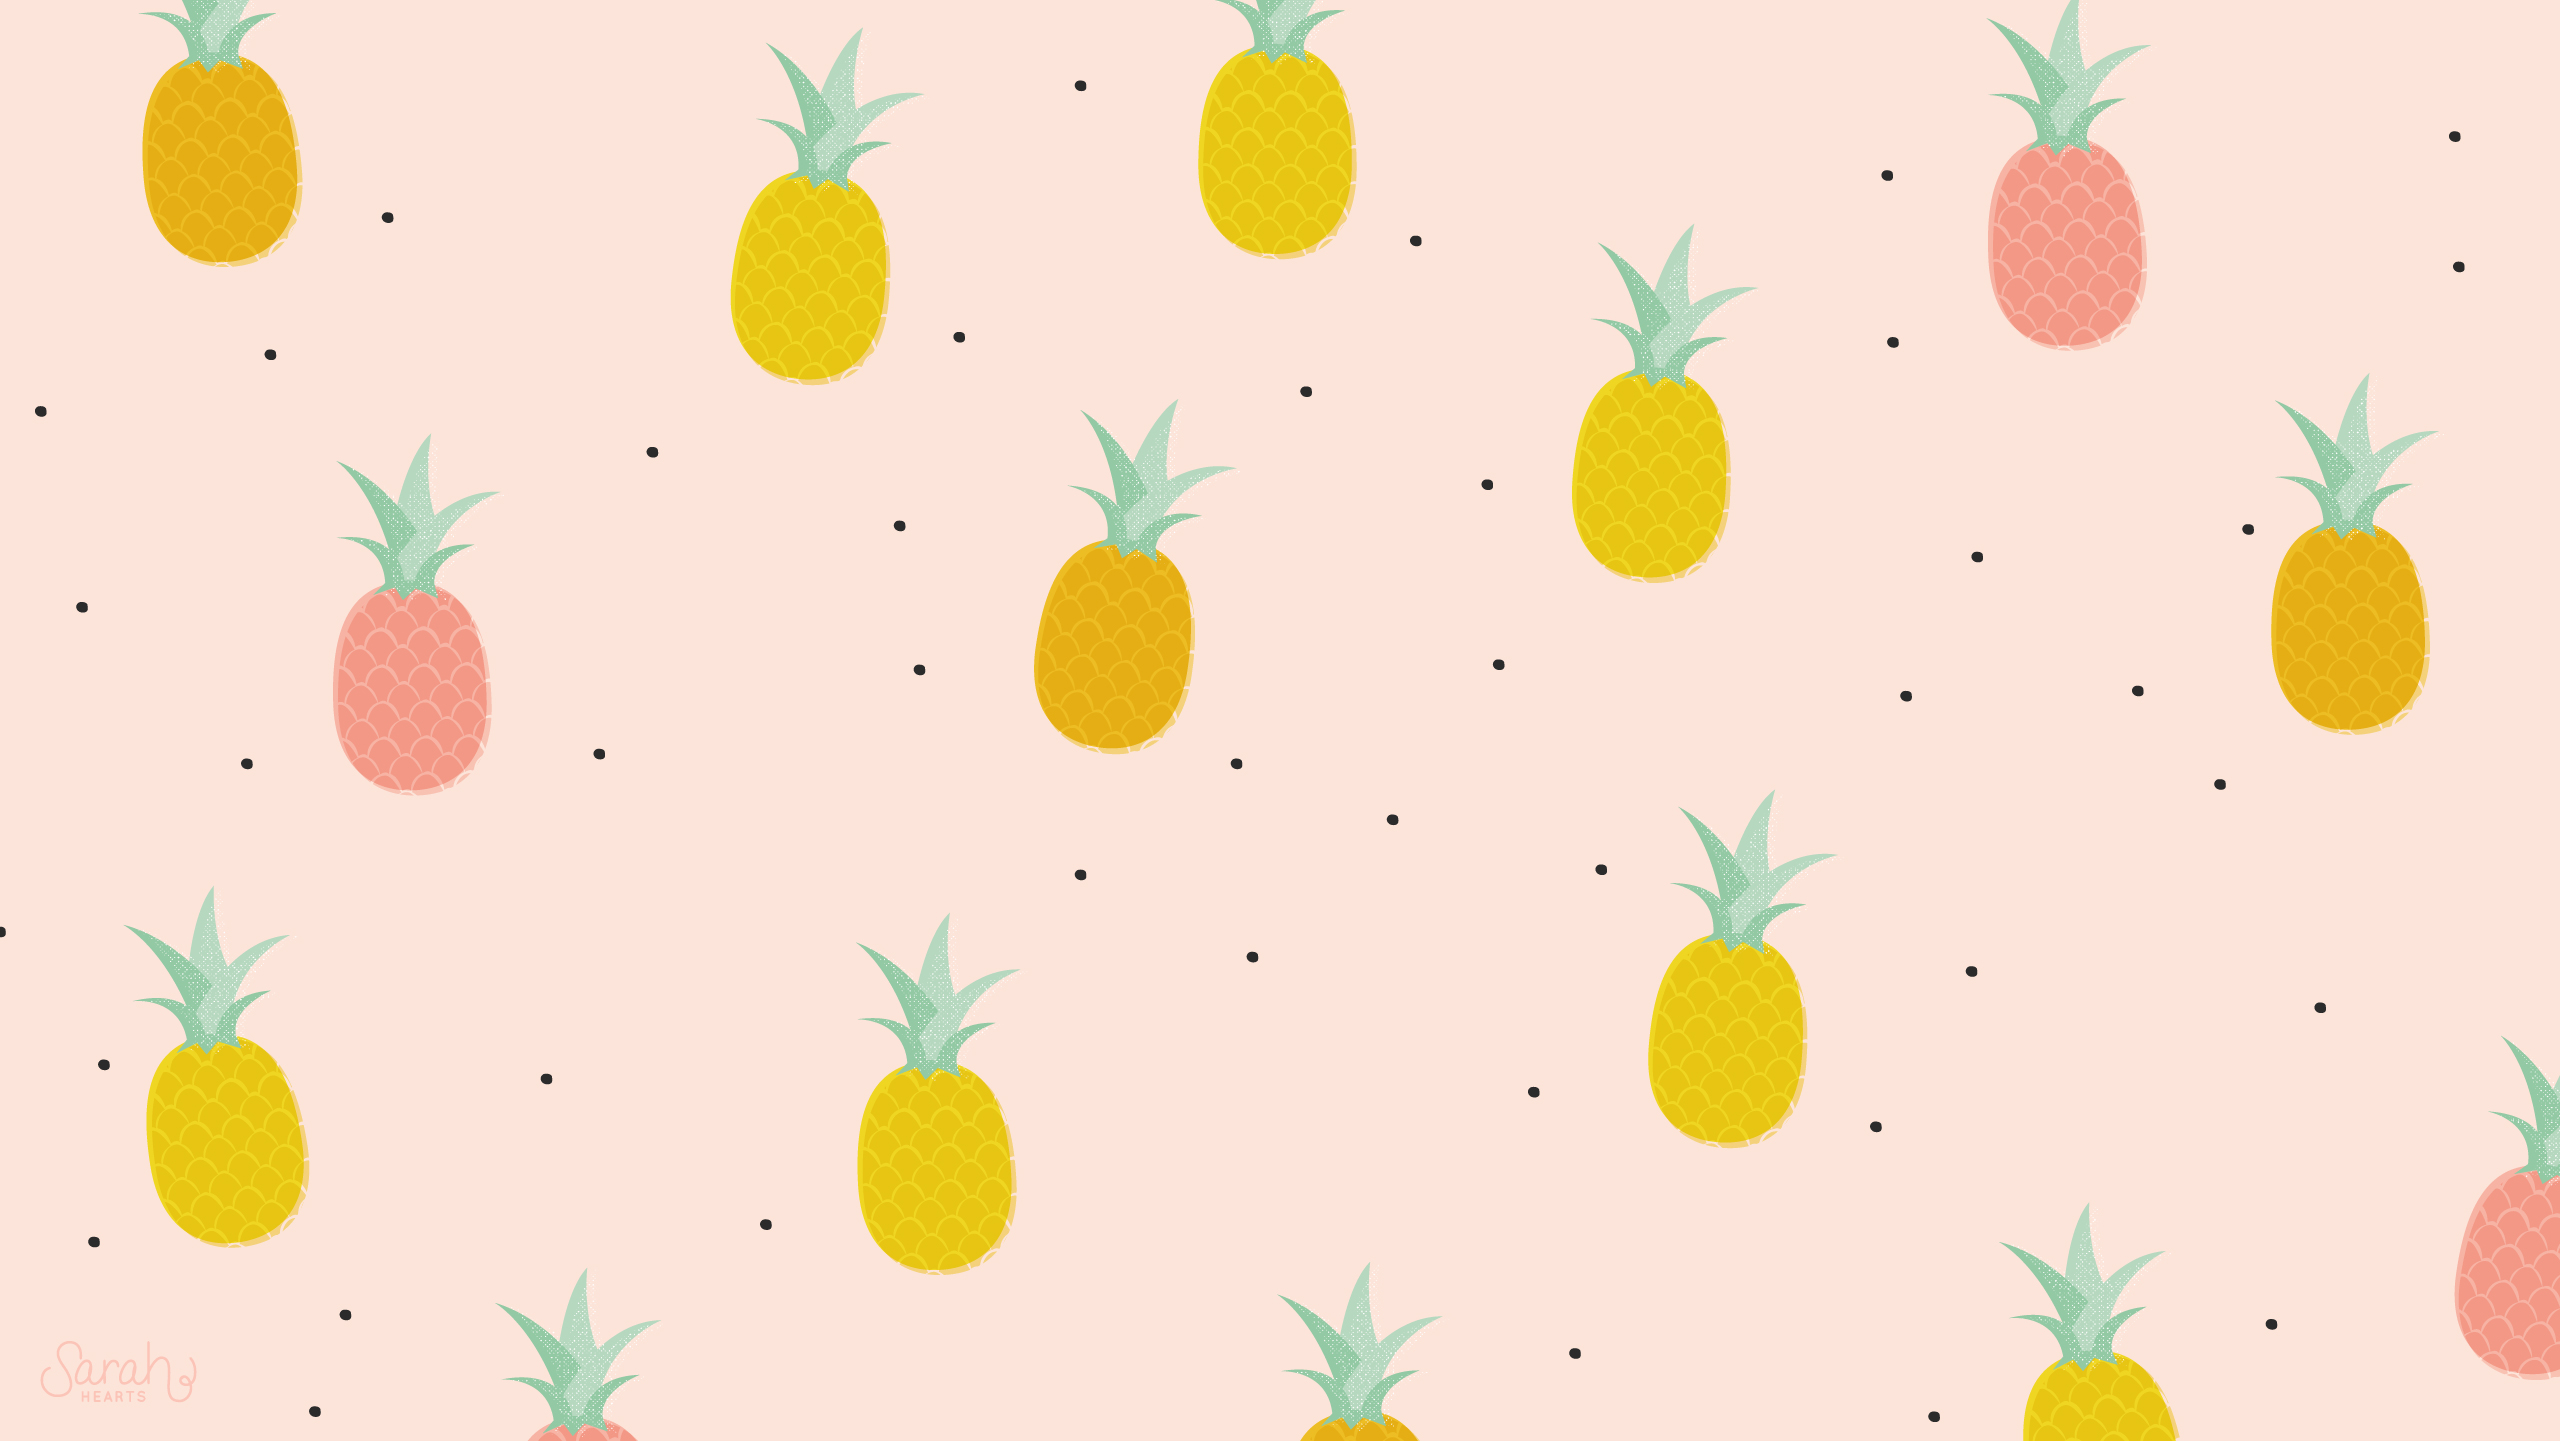 Best Wallpaper Home Screen Pineapple - tumblr_static_ataev50uap4o8ocokss0cowk8  Pictures_491117.jpg